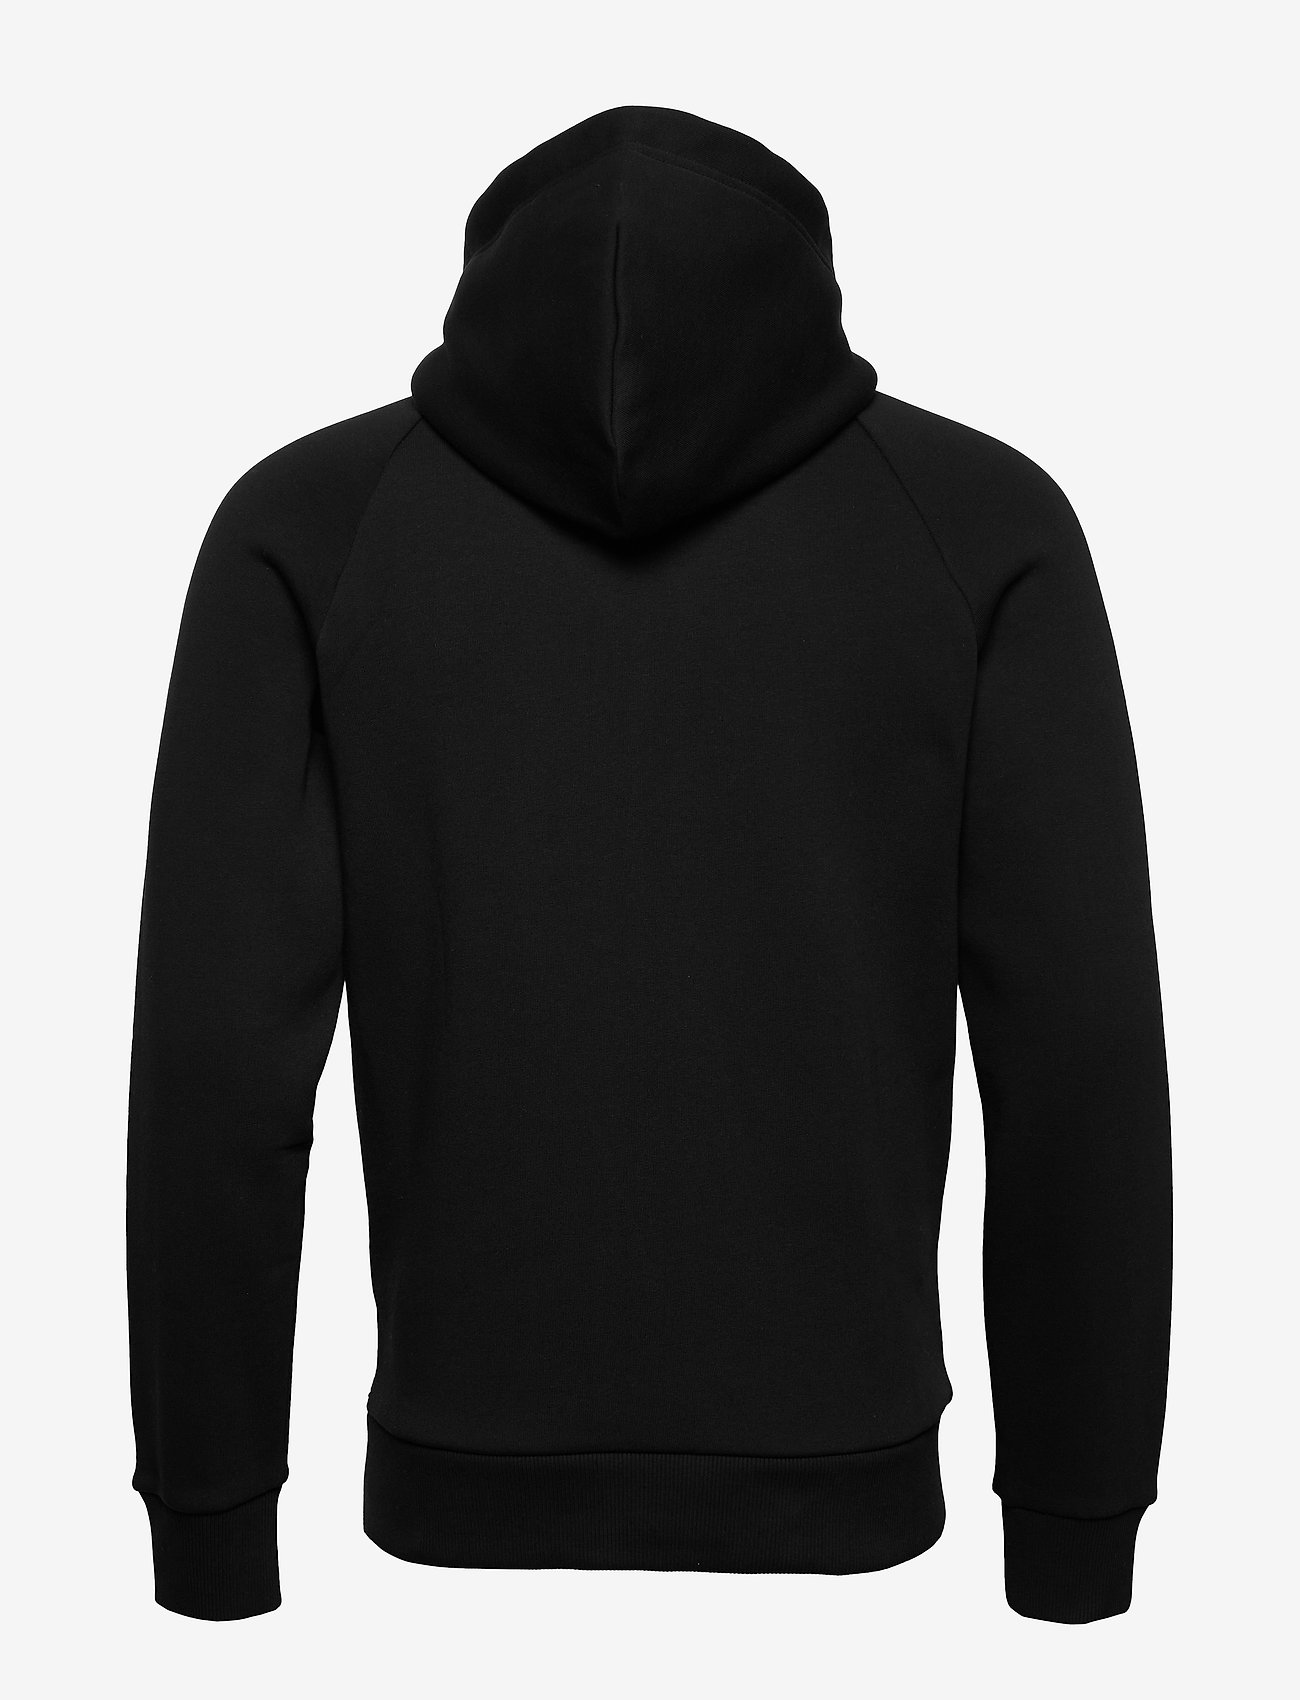 M Original Zip Hood (Black) - Peak Performance 6uZSAw